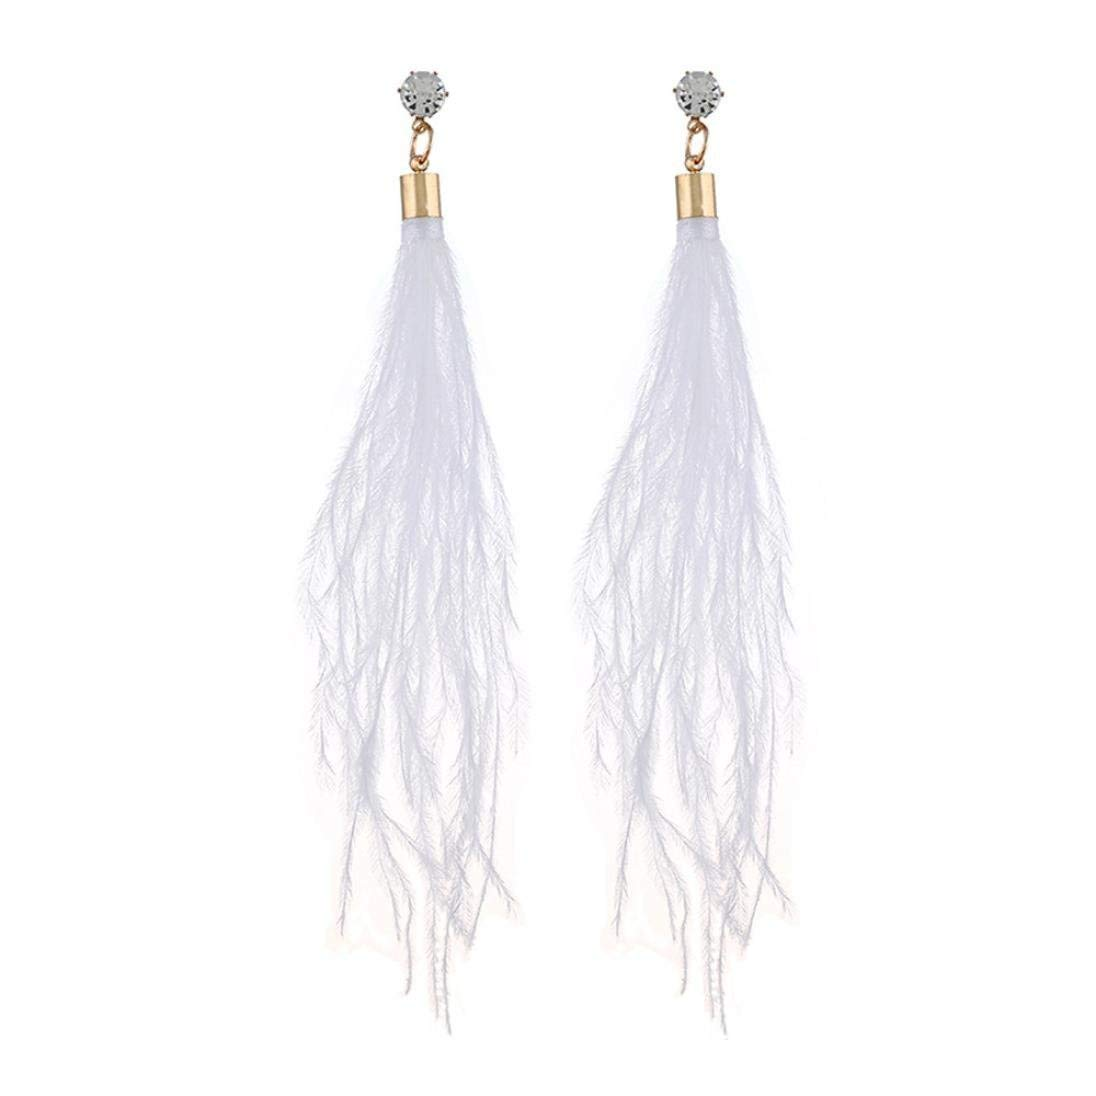 Leedford New Fasaion Earrings, Women's Long Tassels Pendant Ear Studs Earrings Jewelry Ornaments